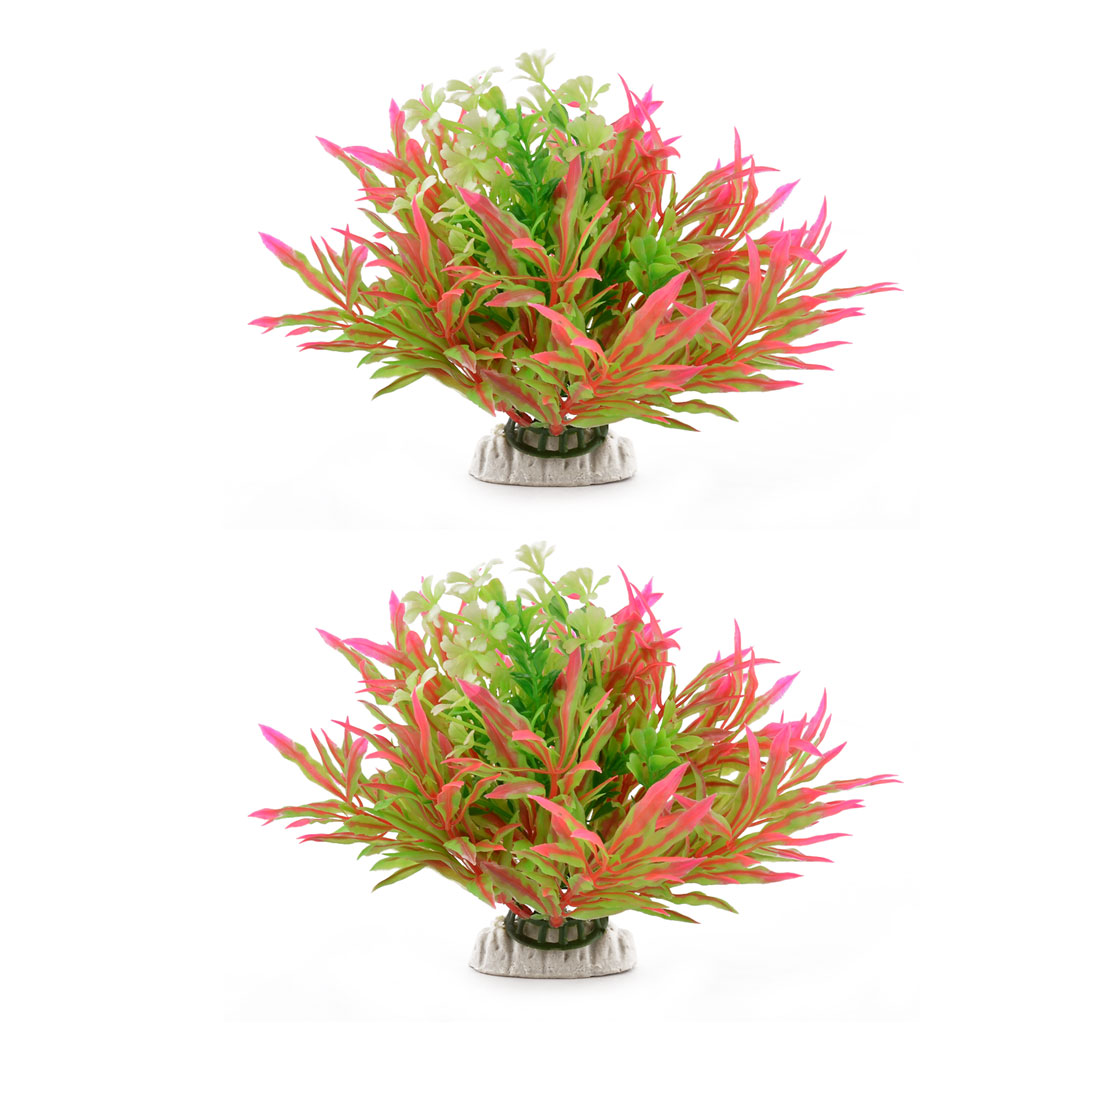 Fish Bowl Tank Landscape Artificial Water Plant Grass 15cm Height 2pcs - image 2 of 2